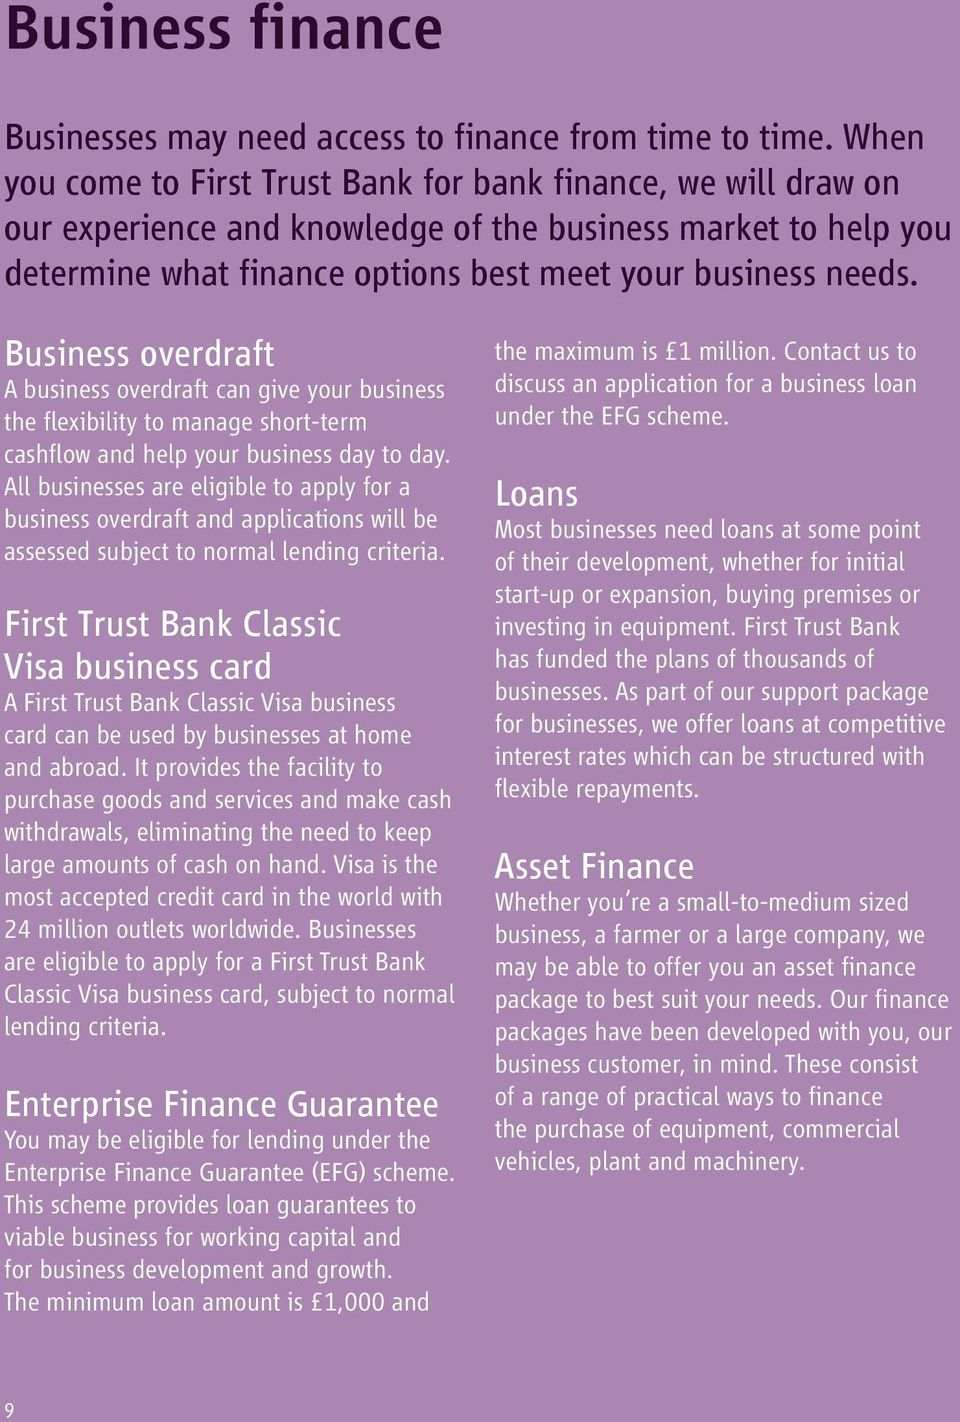 Business overdraft A business overdraft can give your business the flexibility to manage short-term cashflow and help your business day to day.